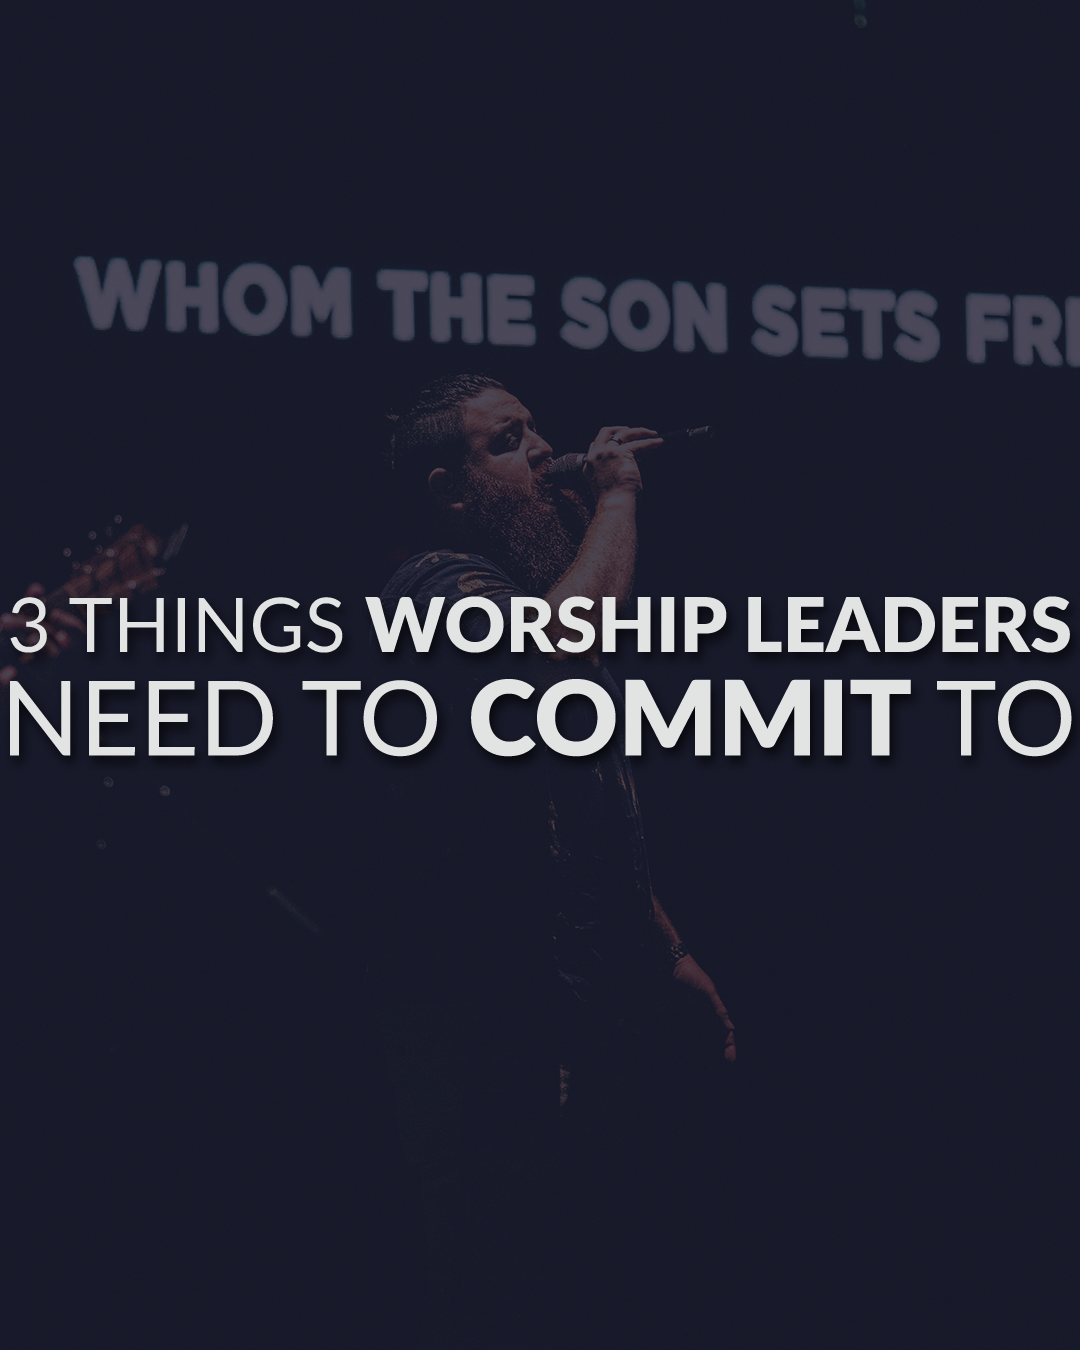 3 Things Worship Leaders Need To Commit To